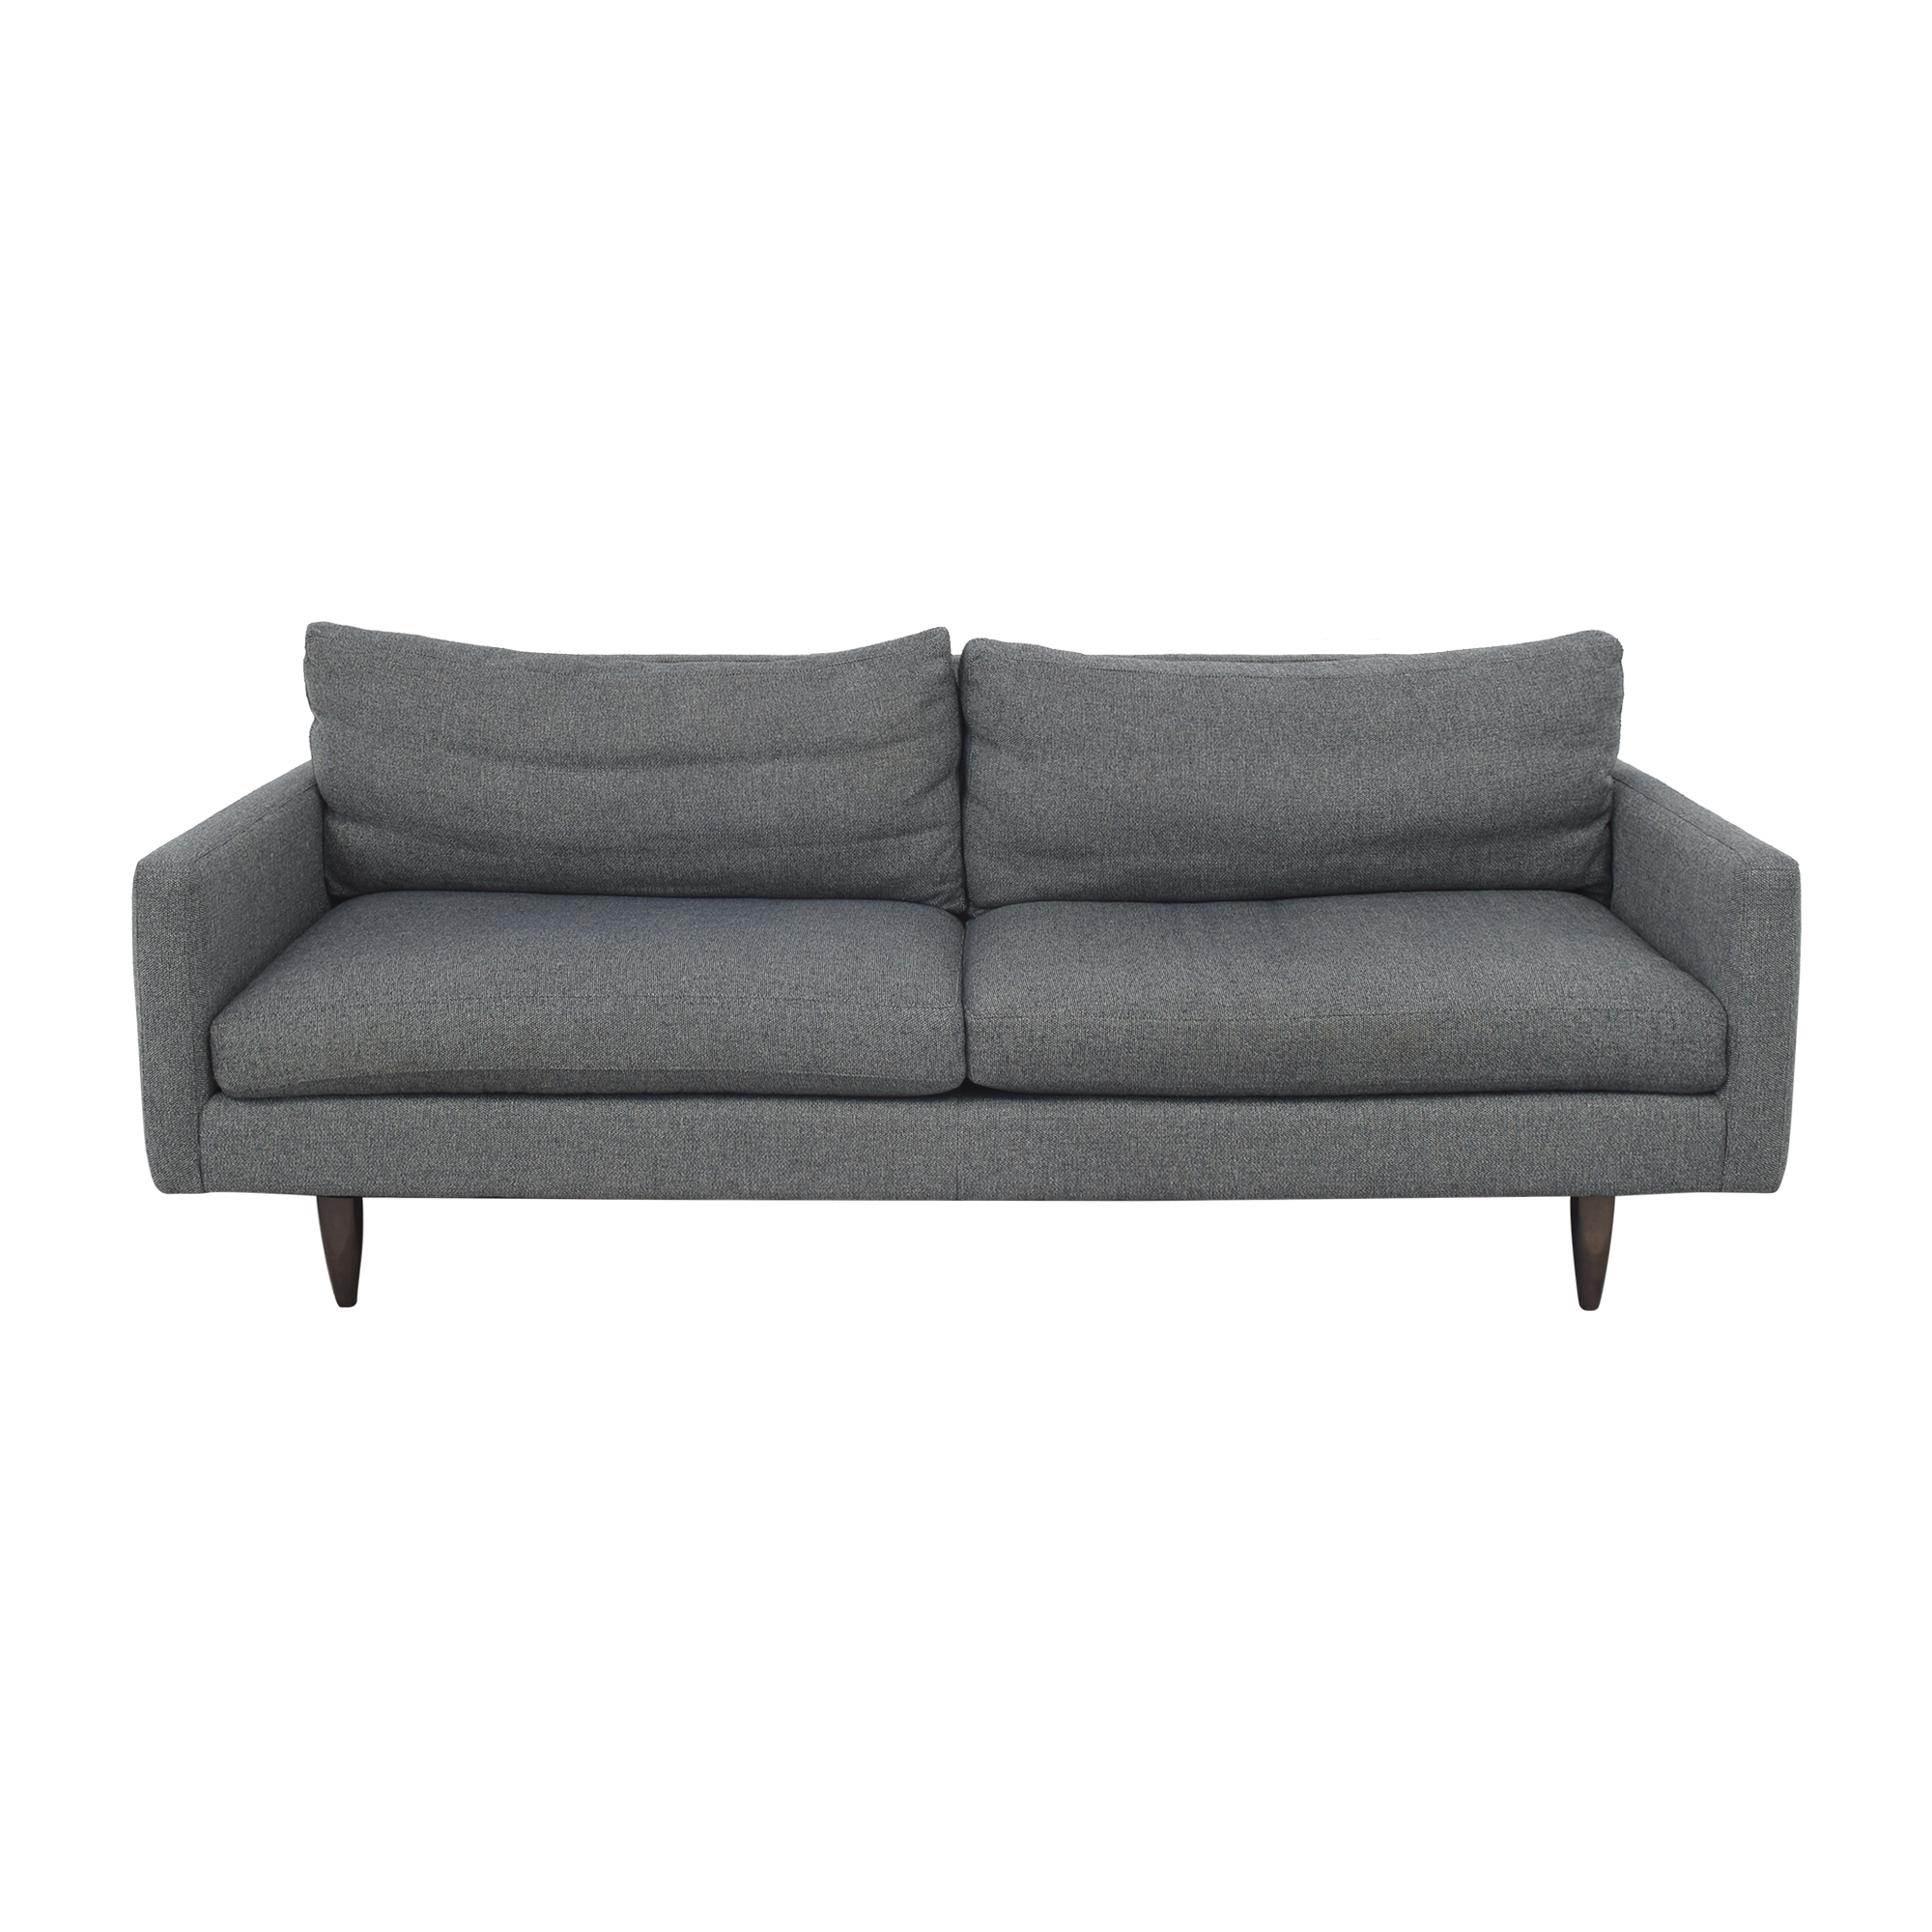 Room & Board Room & Board Jasper Two Cushion Sofa for sale